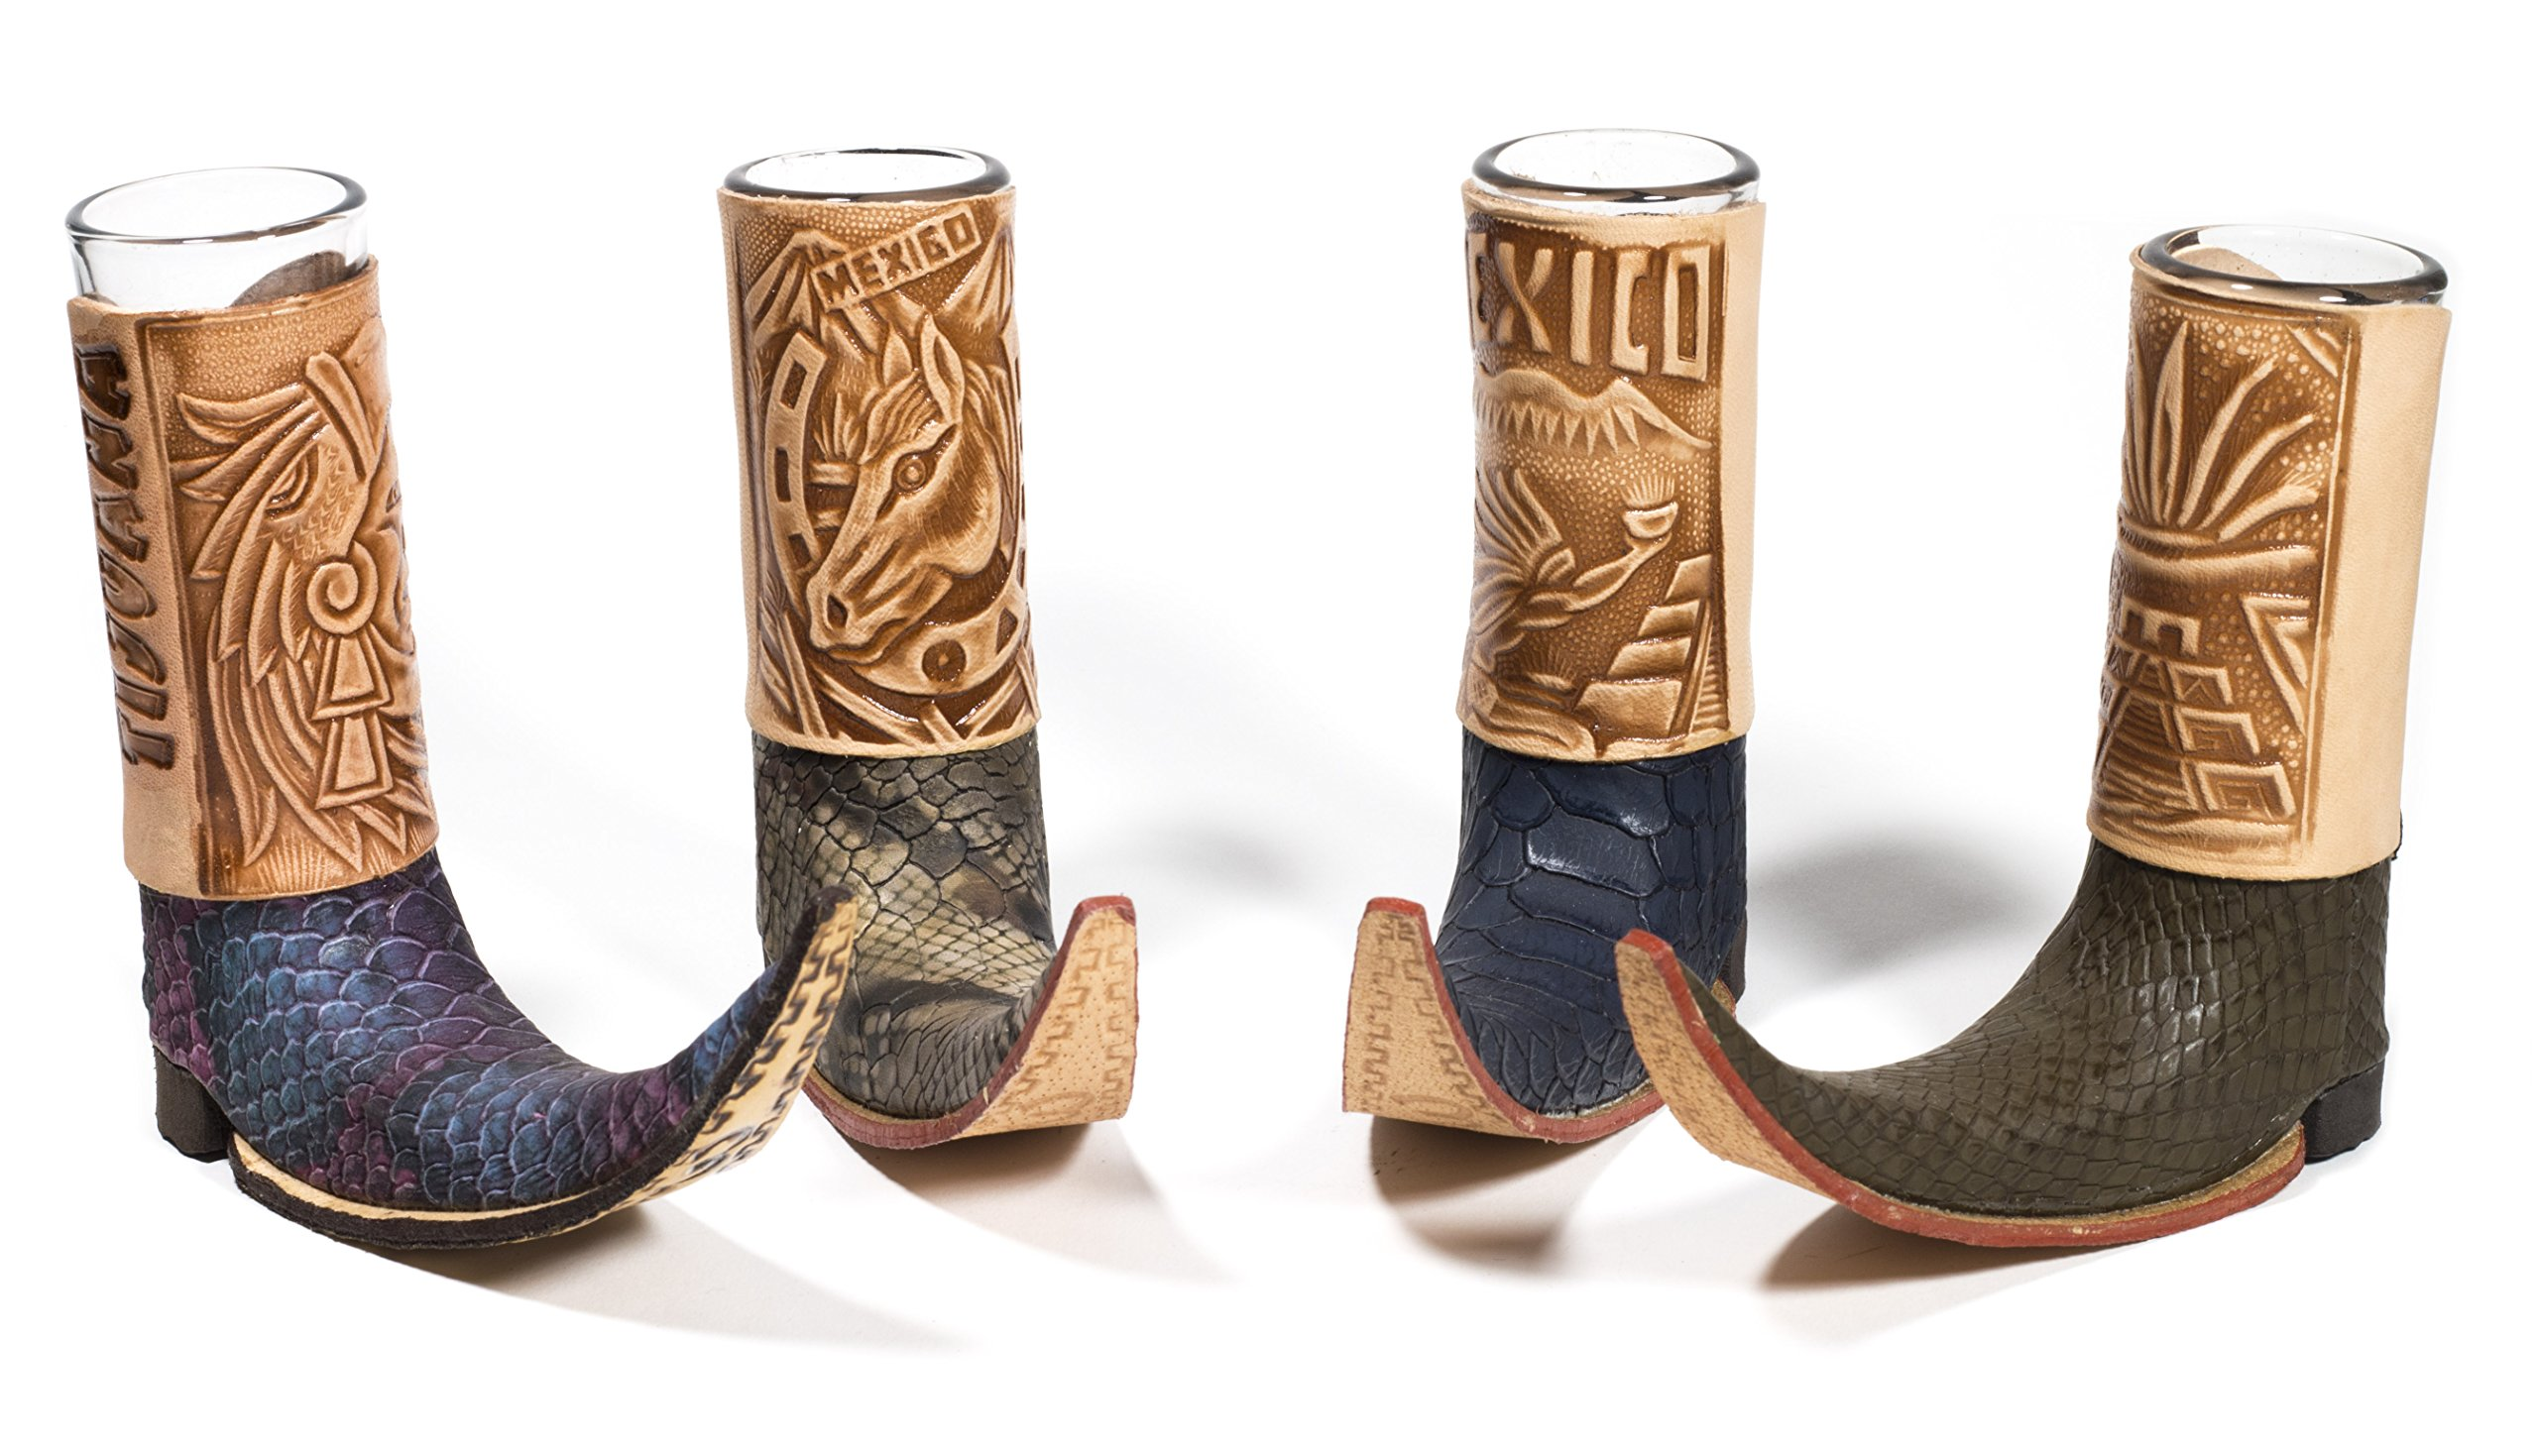 ( 3 Pack ) Mexican Leather Mini Boot Tequila Shot - Original Artisan Bota Tribalera para Tequila (Assorted Colors)